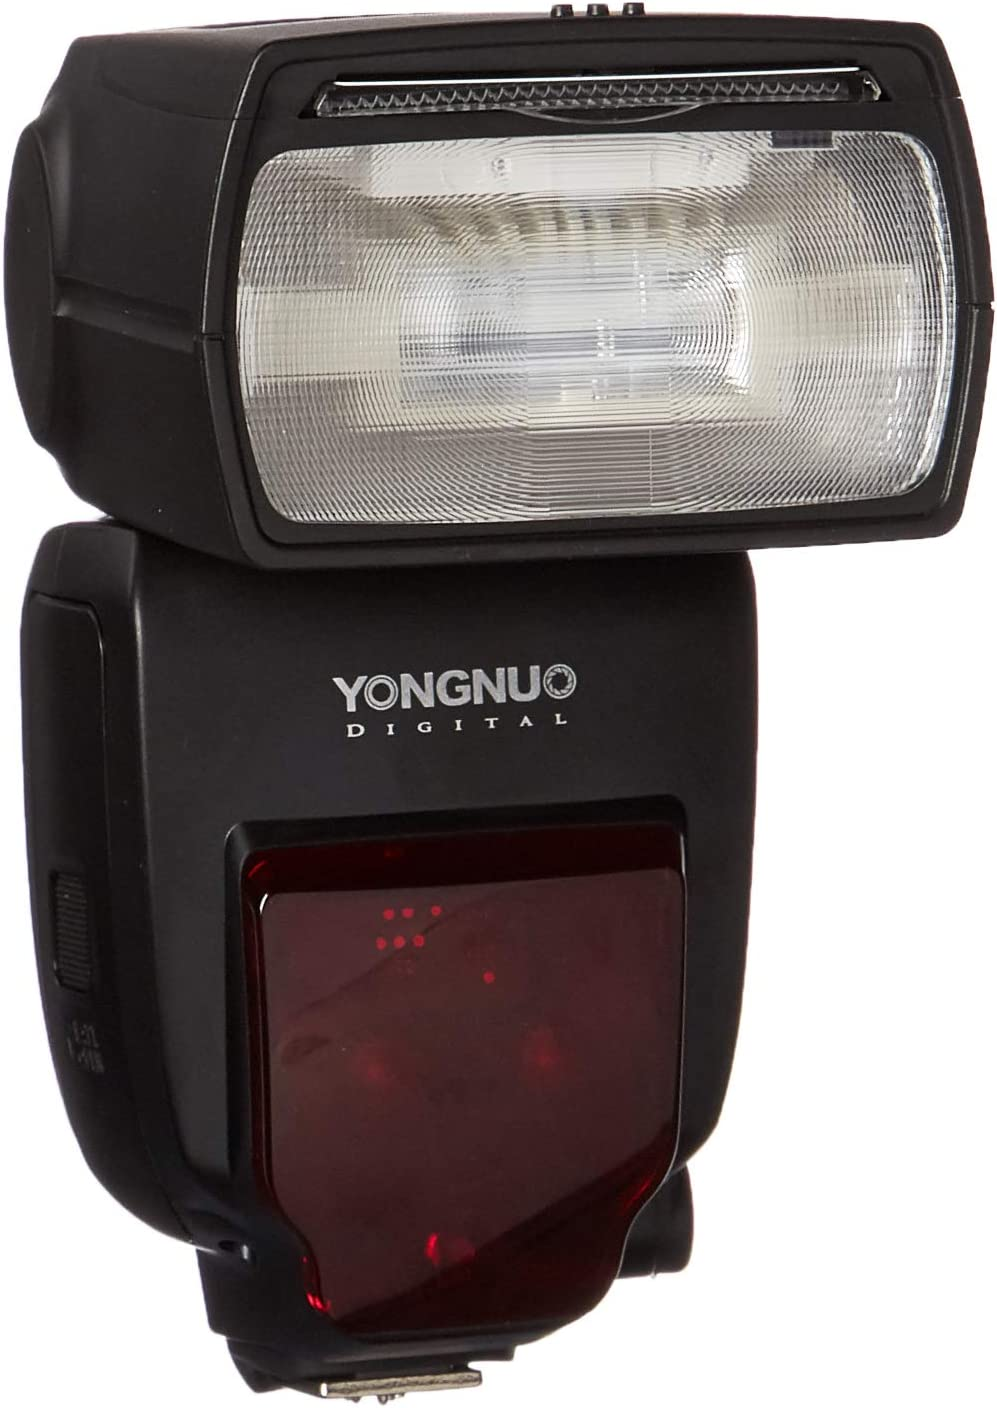 YN685C Yongnuo YN685 Flash TTL HSS 11 Pc Pro kit with Diffuser /& Pocket Bouncer /& Clear Universal Lambenc for Canon T6I 7DII 6D T6I T5I T4I T6